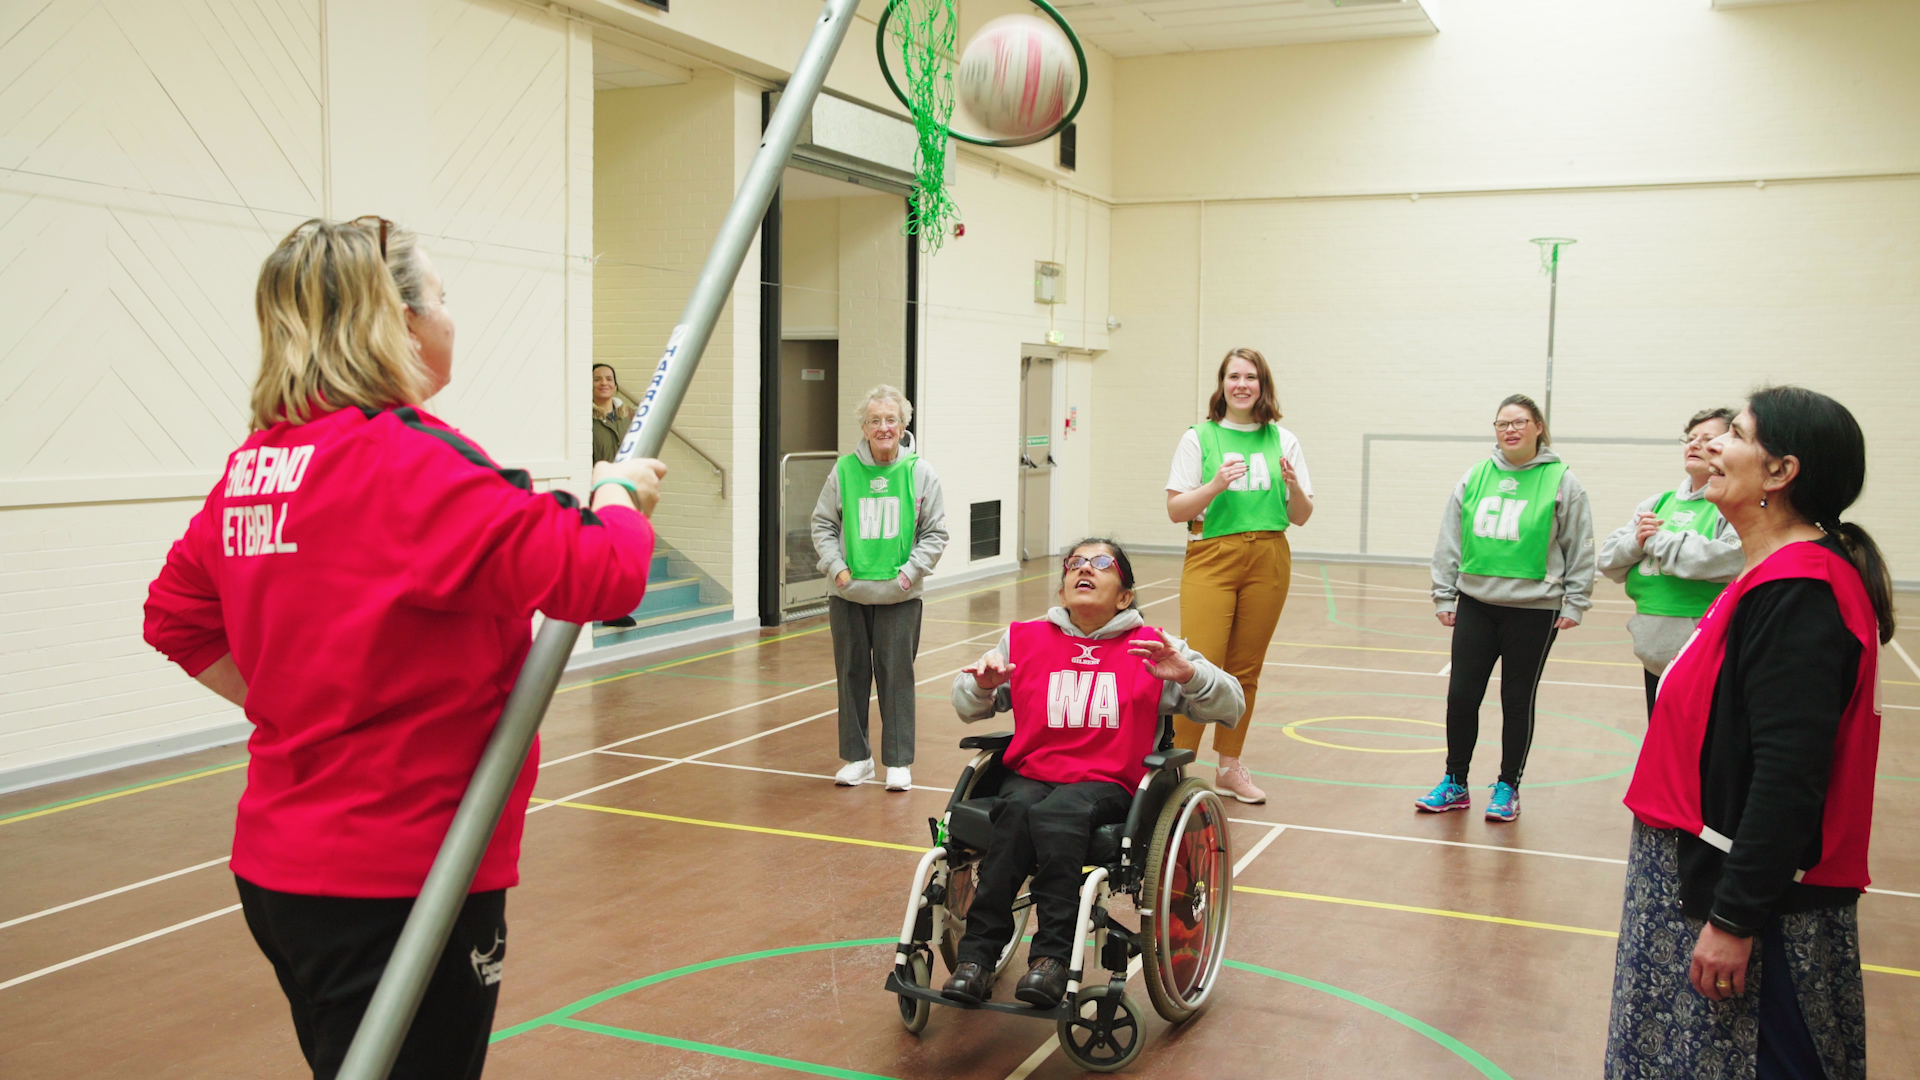 Wheelchair user shoots goal in inclusive netball session